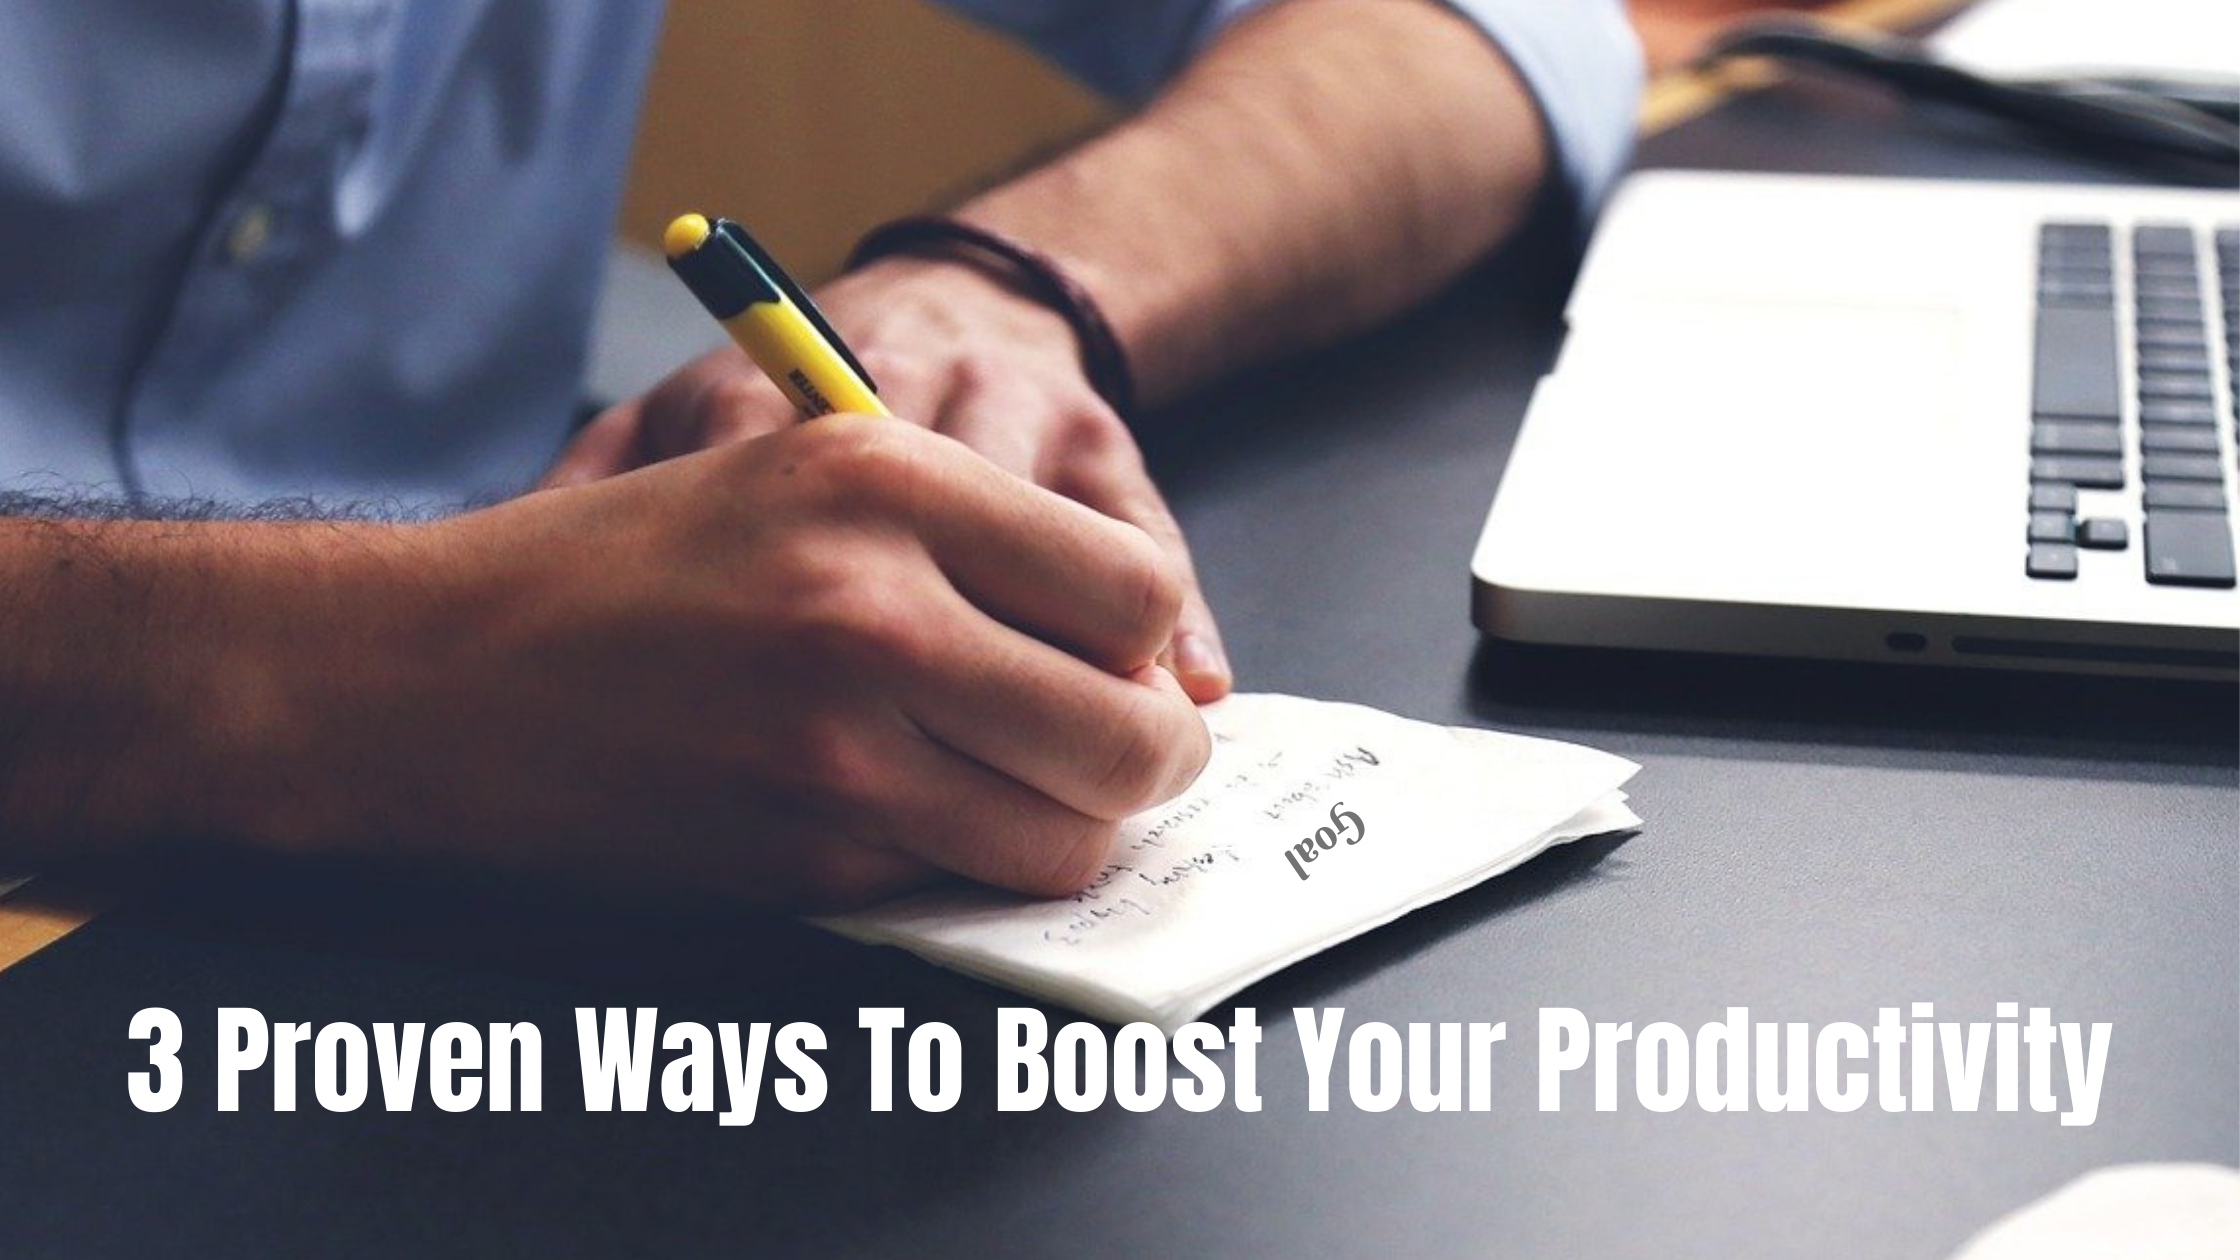 3 Proven Ways To Boost Your Productivity